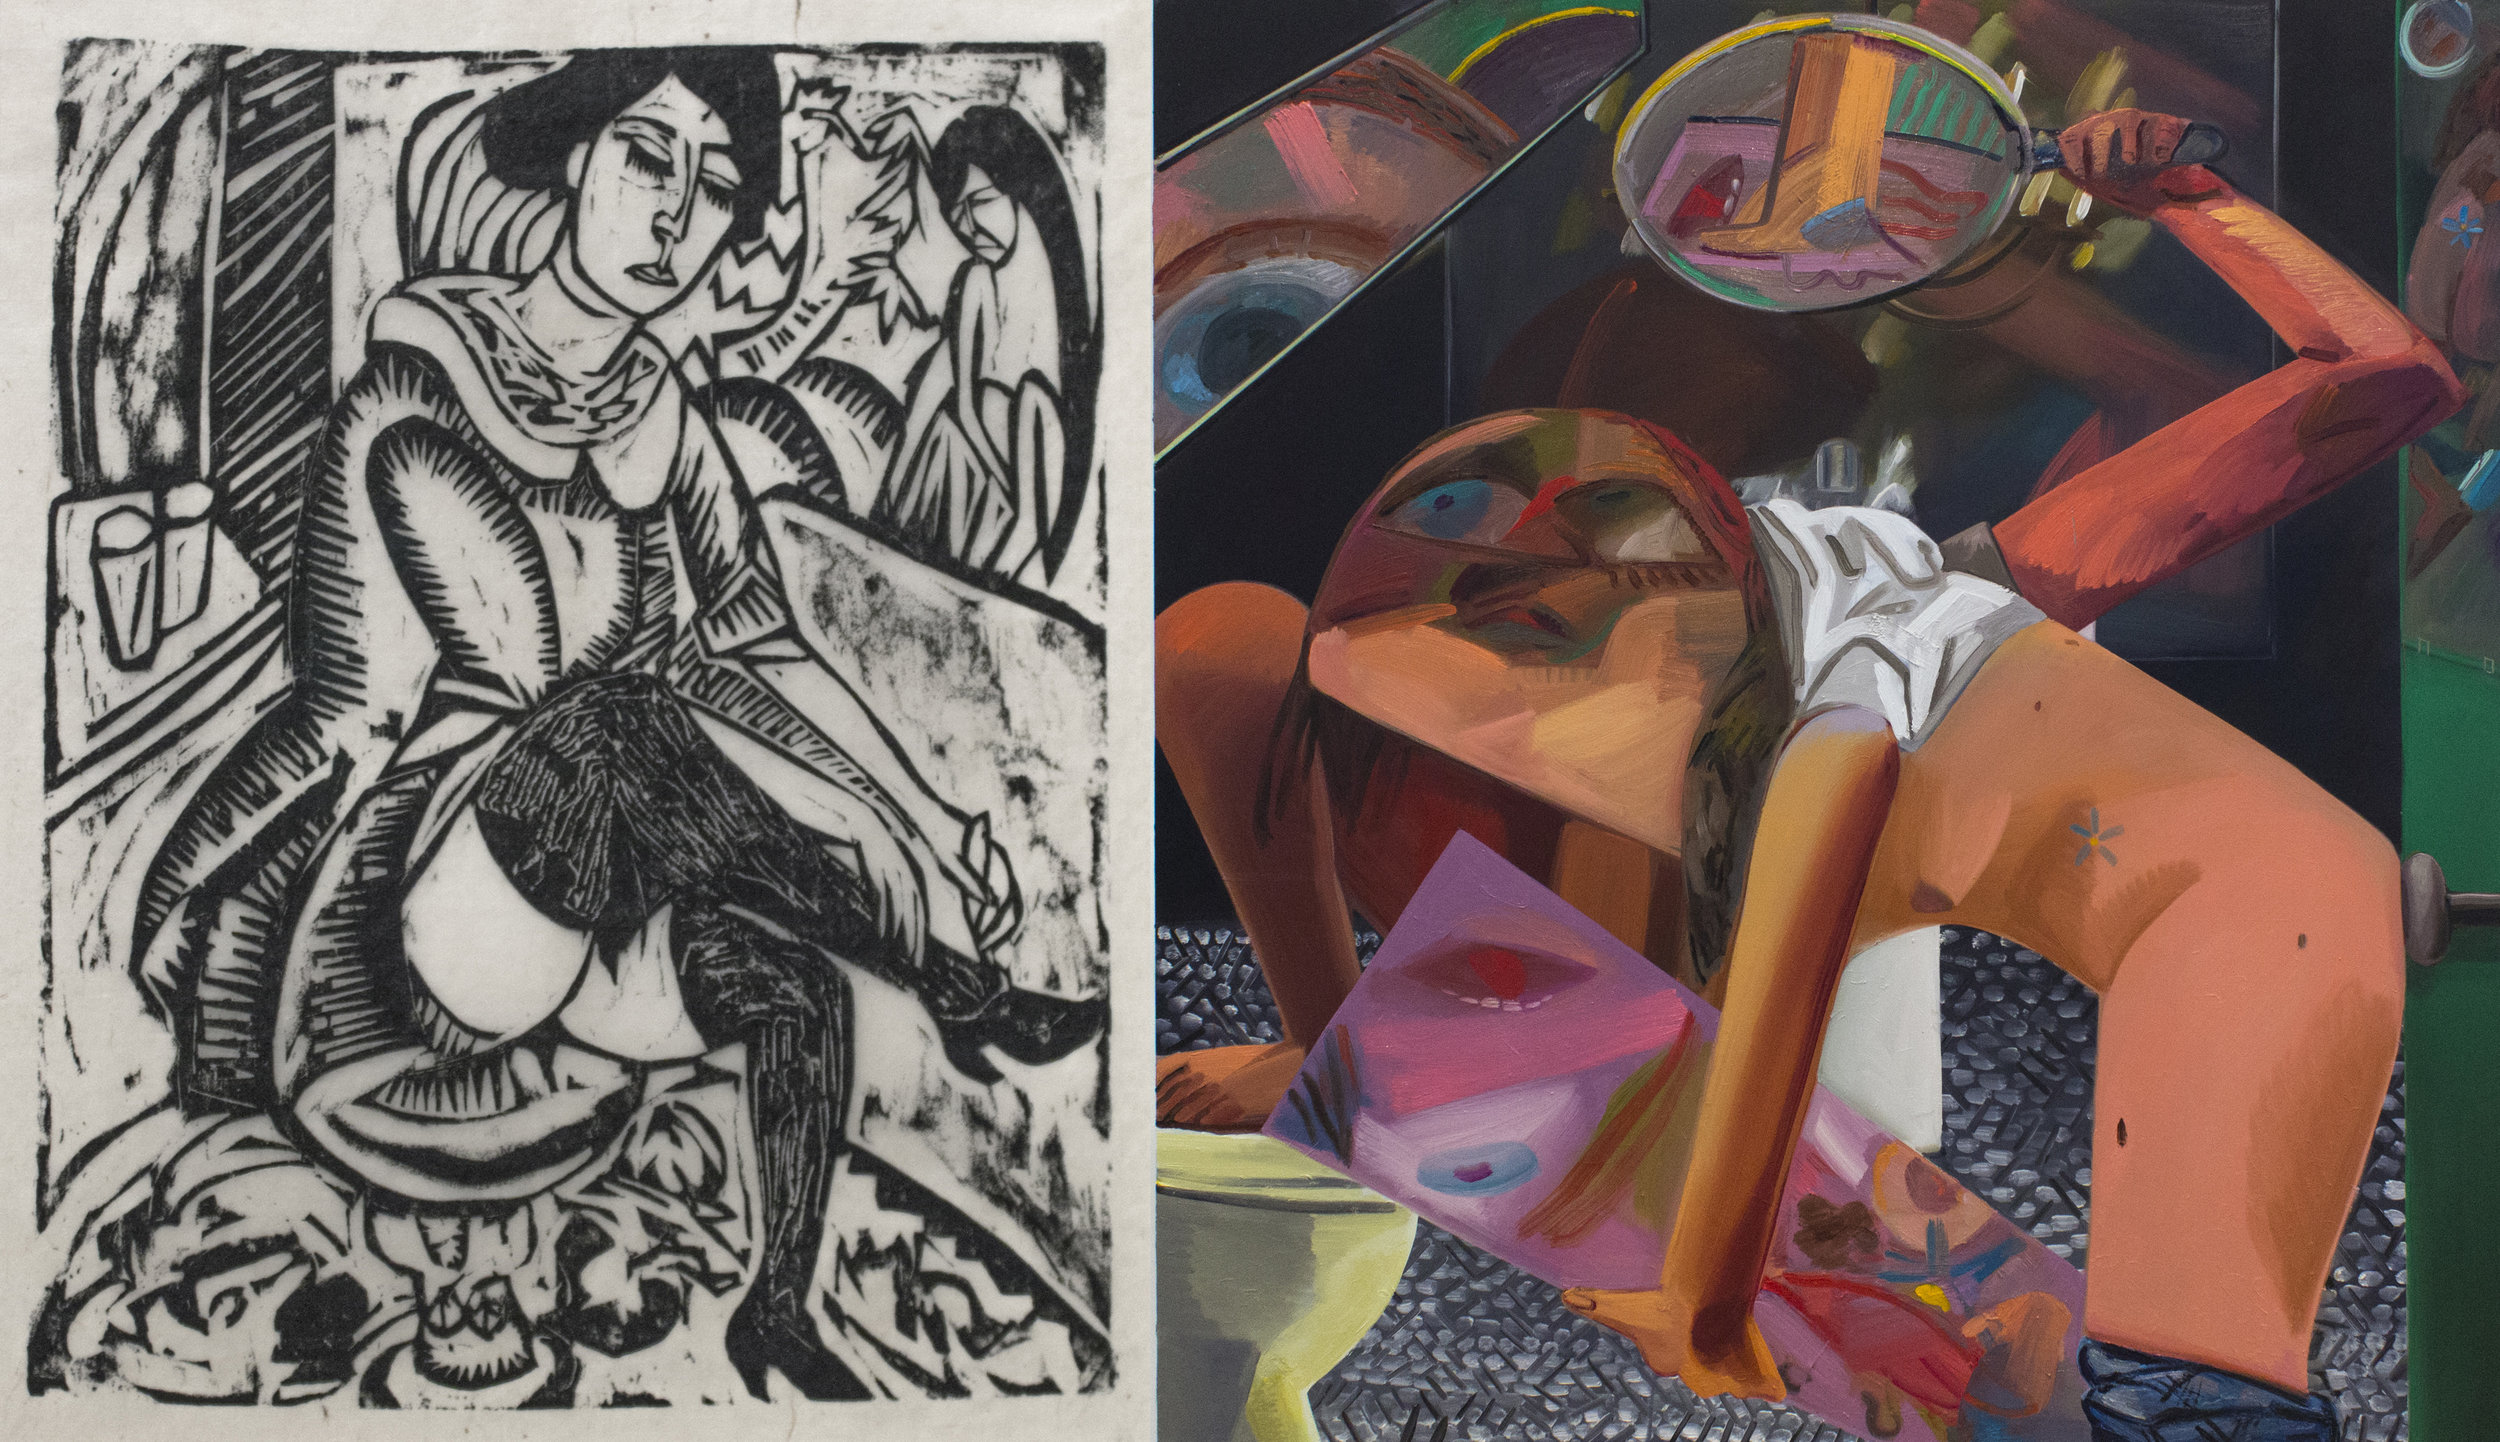 Ernst Ludwig Kirchner, Woman Buttoning Her Shoe, 1912, Woodcut AND Dana Schutz, Self-Exam, 2017, Oil on Canvas.jpg